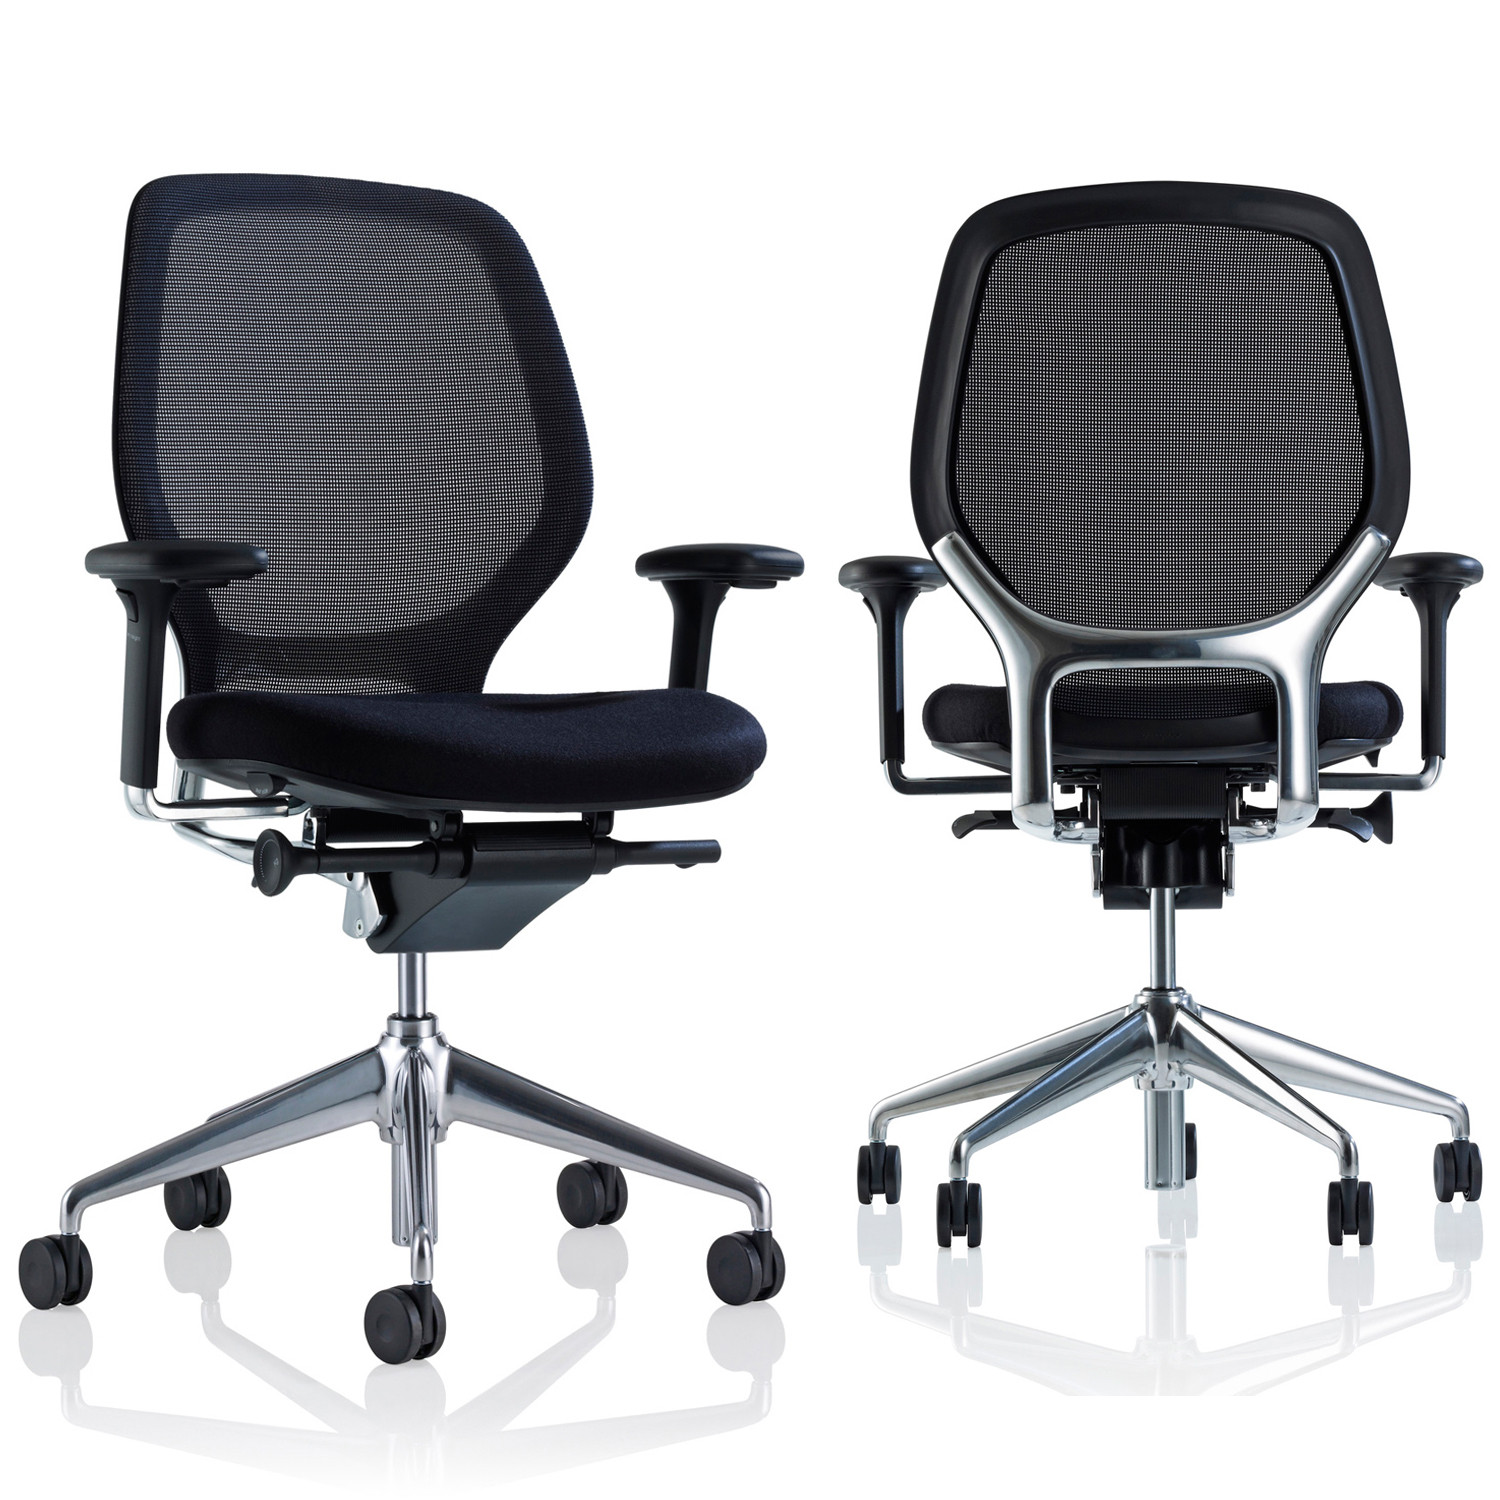 back support for office chair with Ara Mesh Task Chairs on Desk Chair furthermore Store additionally Capisco also Clarathomson in addition Ara Mesh Task Chairs.